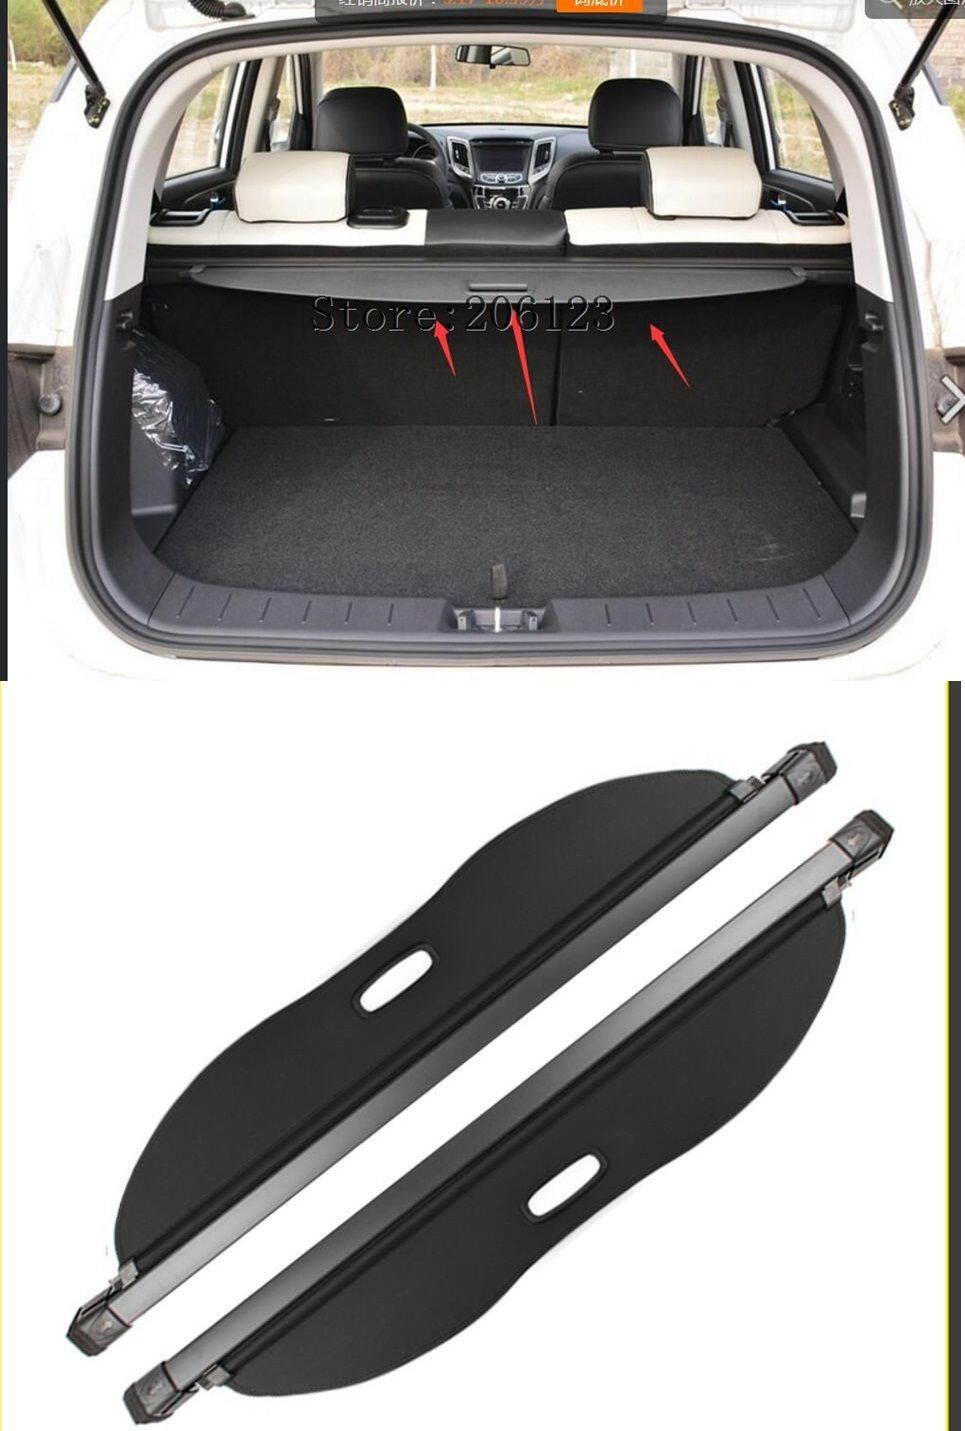 Black Rear Trunk Security Shield Cargo Cover Shade For For CHANGAN CS35 2015 2016 2017 2018